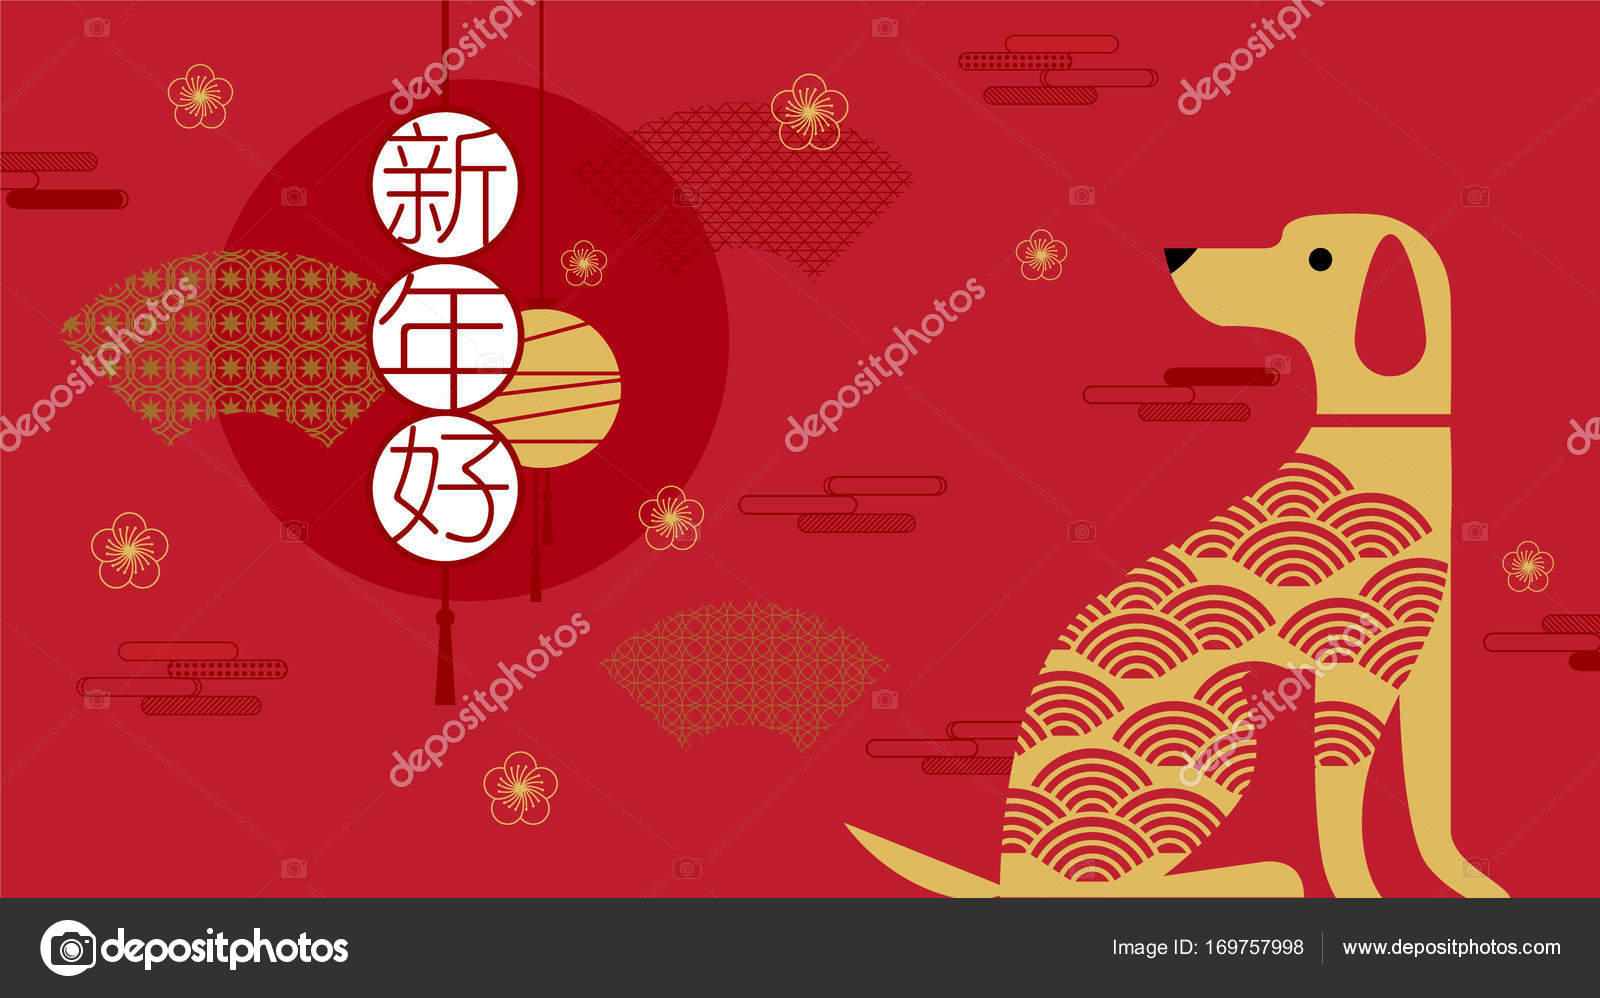 Happy new year 2018 chinese new year greetings year of the do happy new year 2018 chinese new year greetings year of the do kristyandbryce Gallery